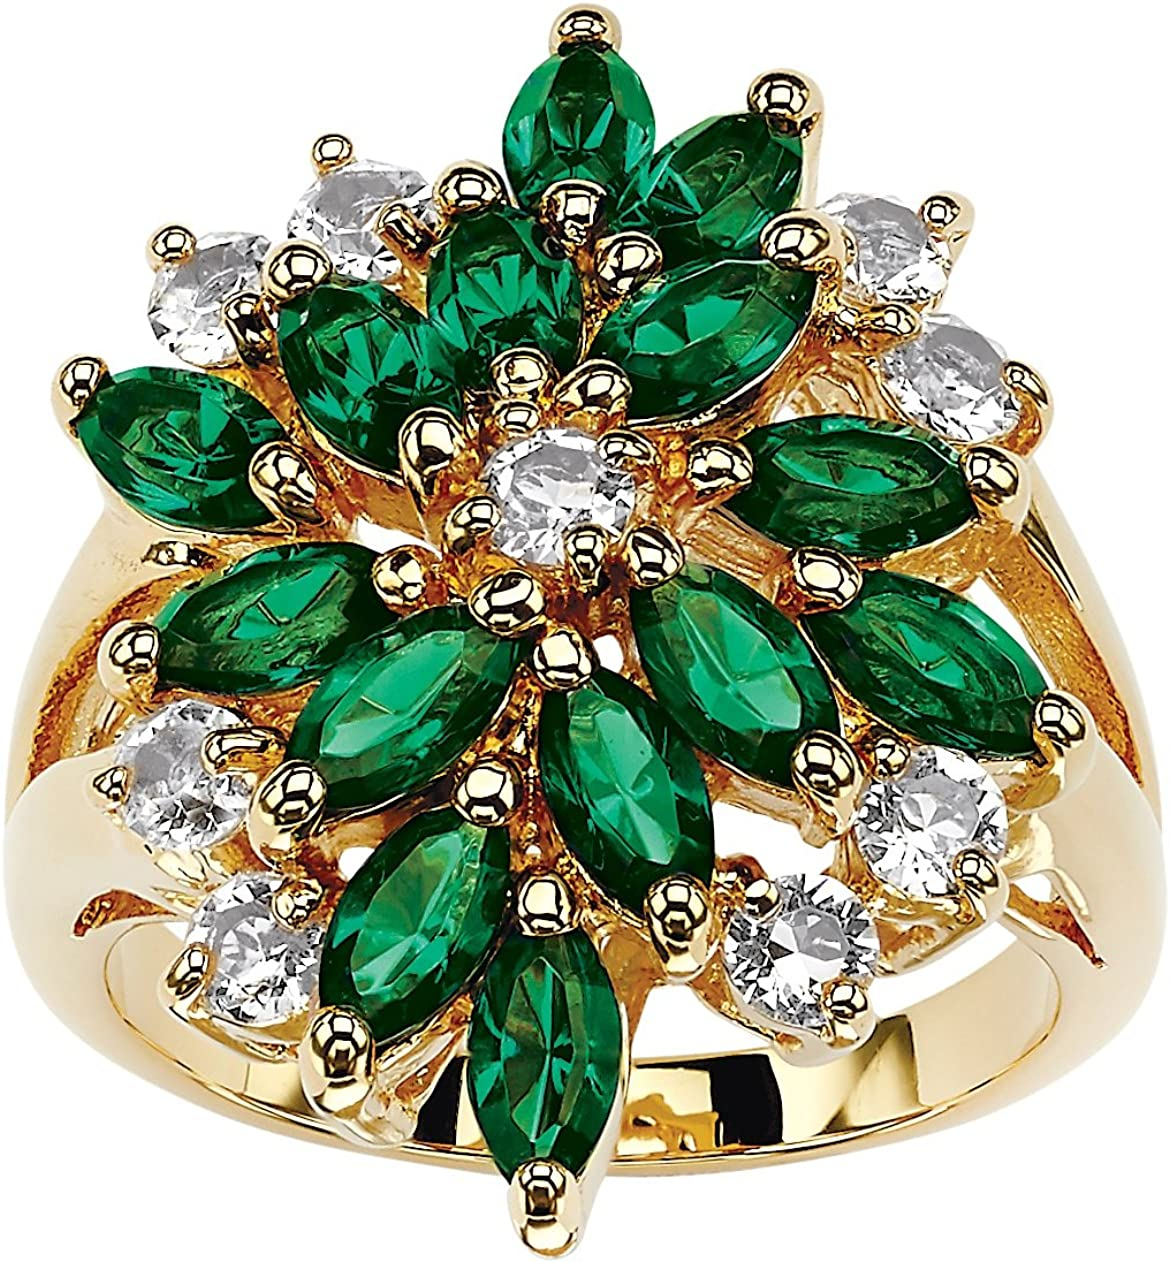 Palm Beach Jewelry 18K Yellow Gold Plated Marquise Shaped Green Red or Blue and White Crystal Ring.